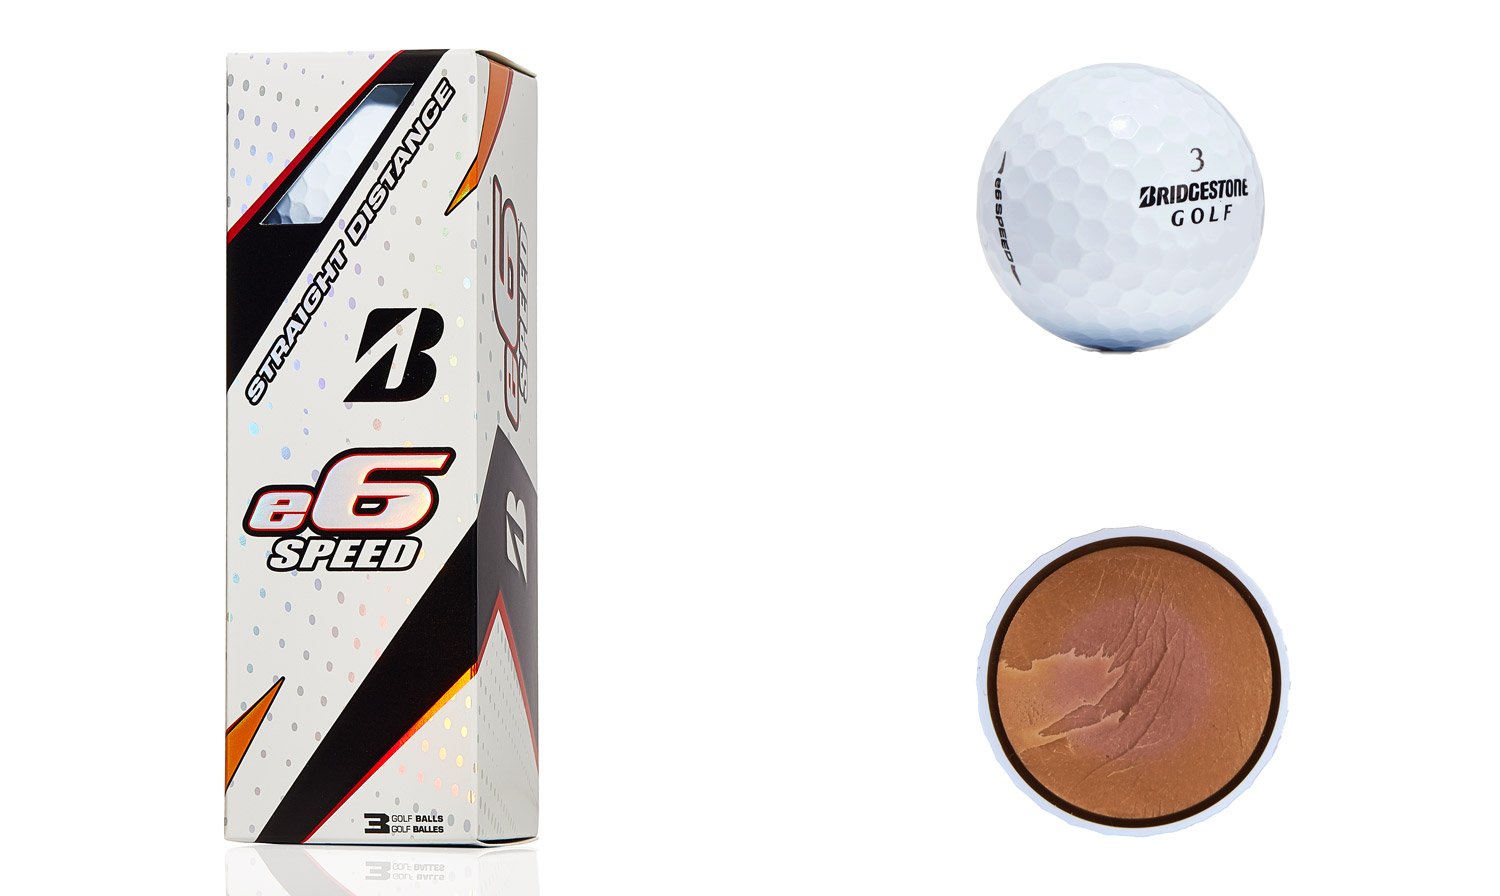 Bridgestone e6 Speed golf balls.